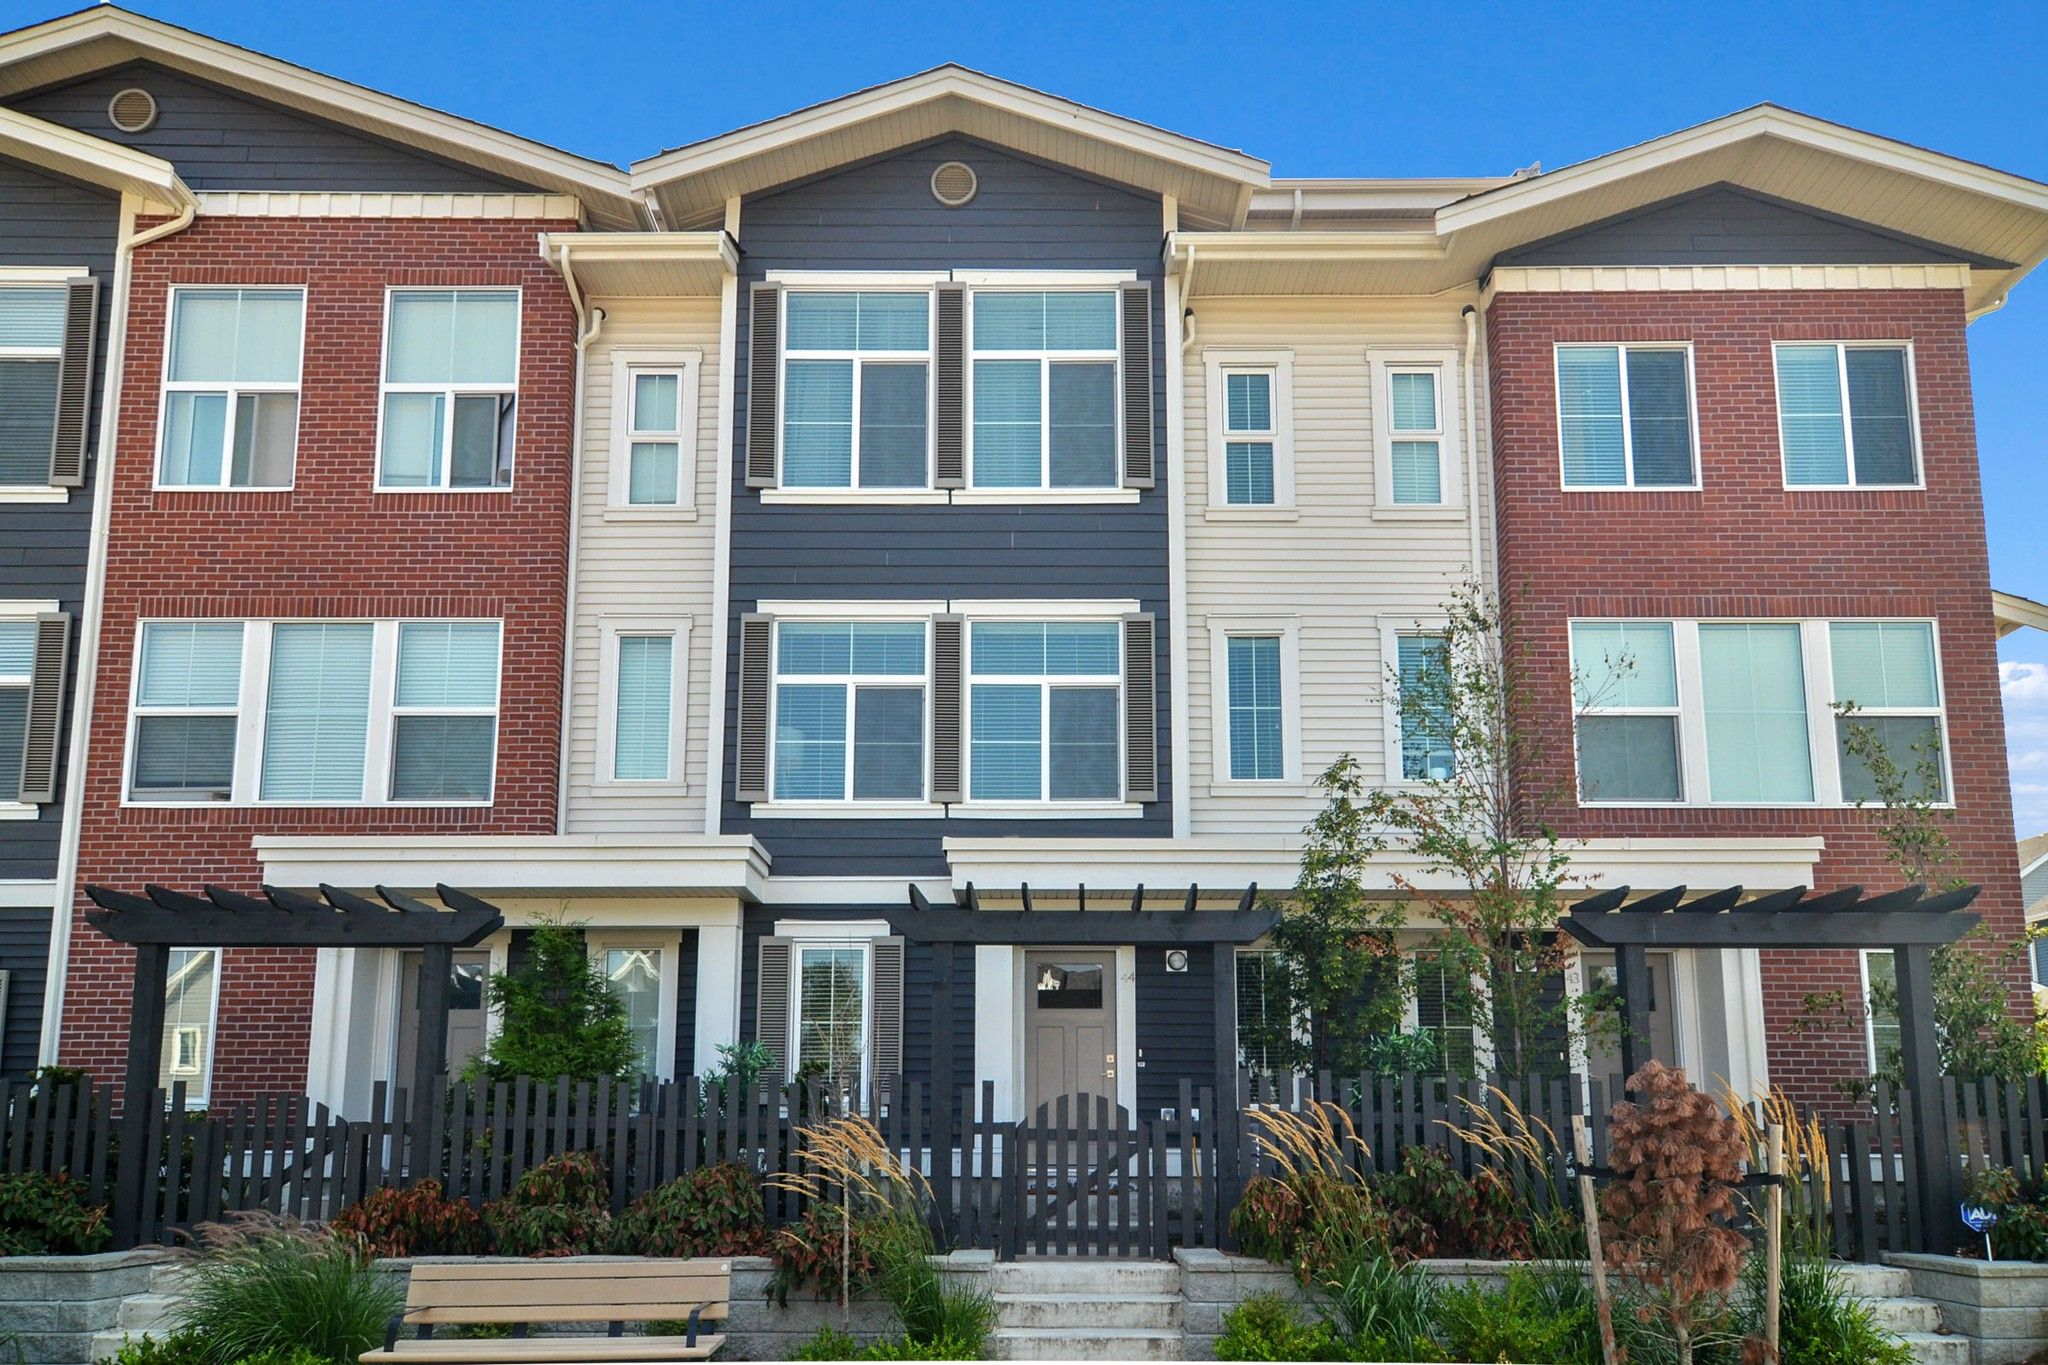 """Main Photo: 44 8371 202B Street in Langley: Willoughby Heights Townhouse for sale in """"Kensington Lofts"""" : MLS®# R2606298"""